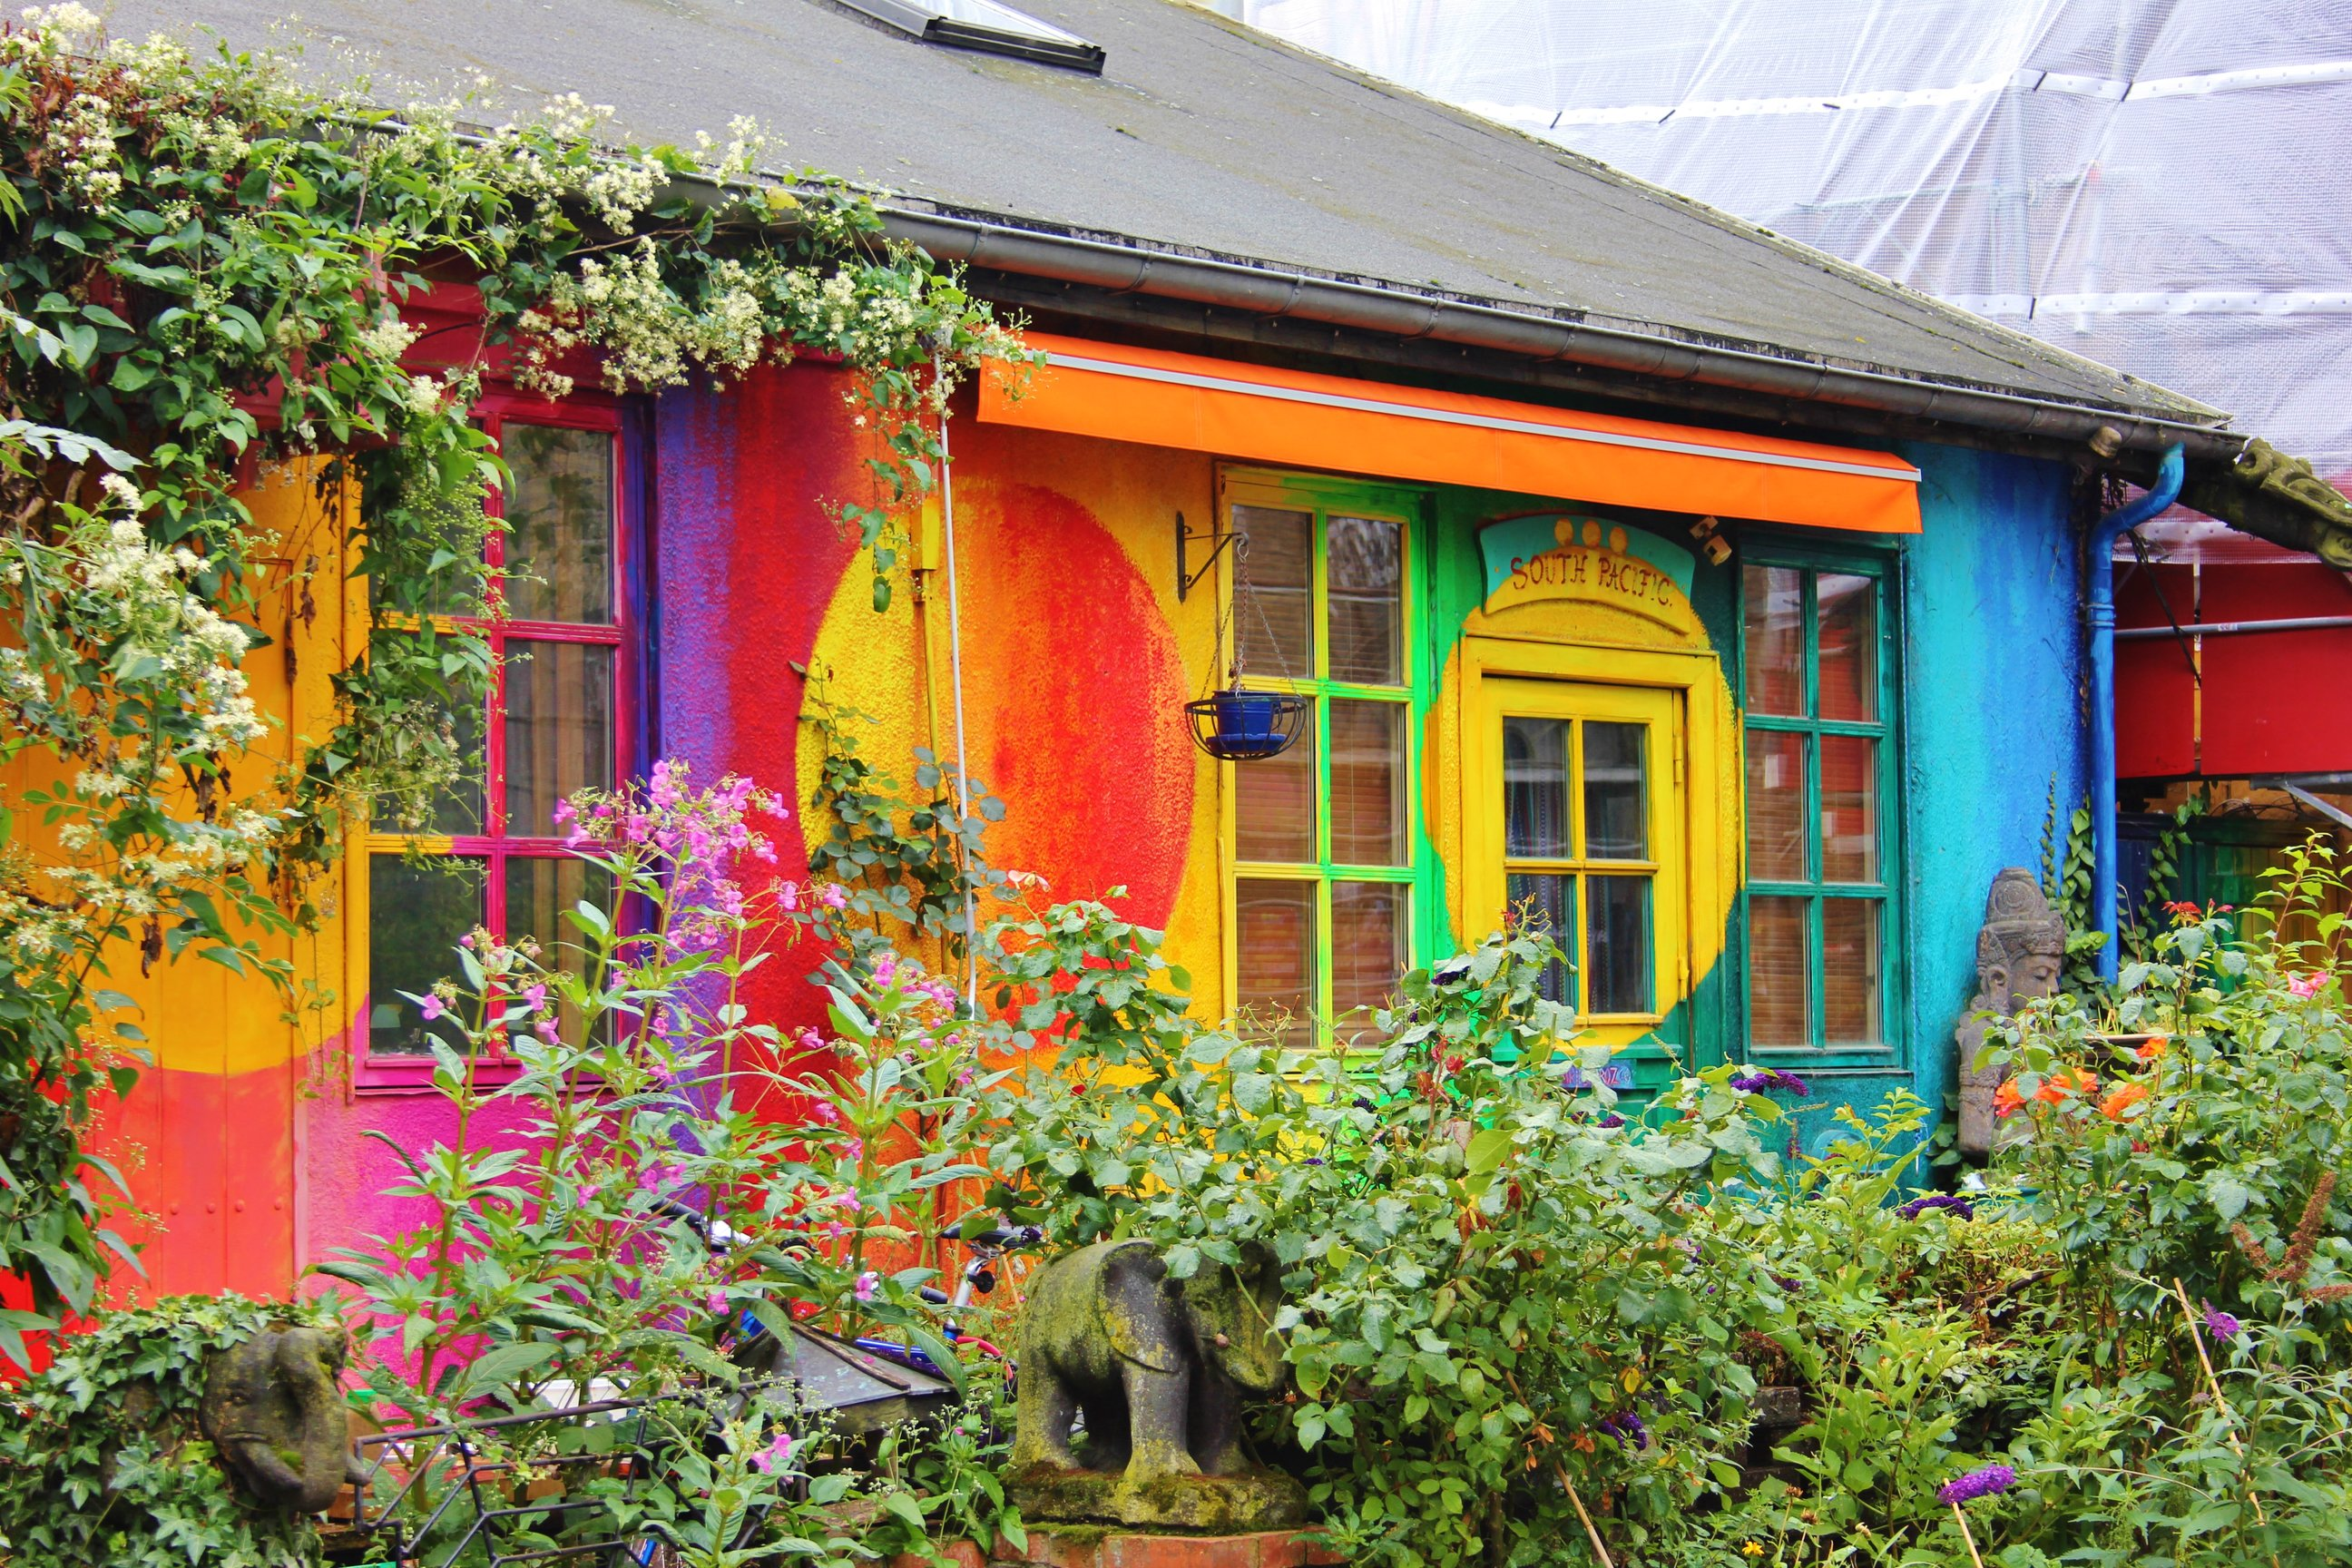 Brightly painted houses in Freetown Christiania, Copenhagen